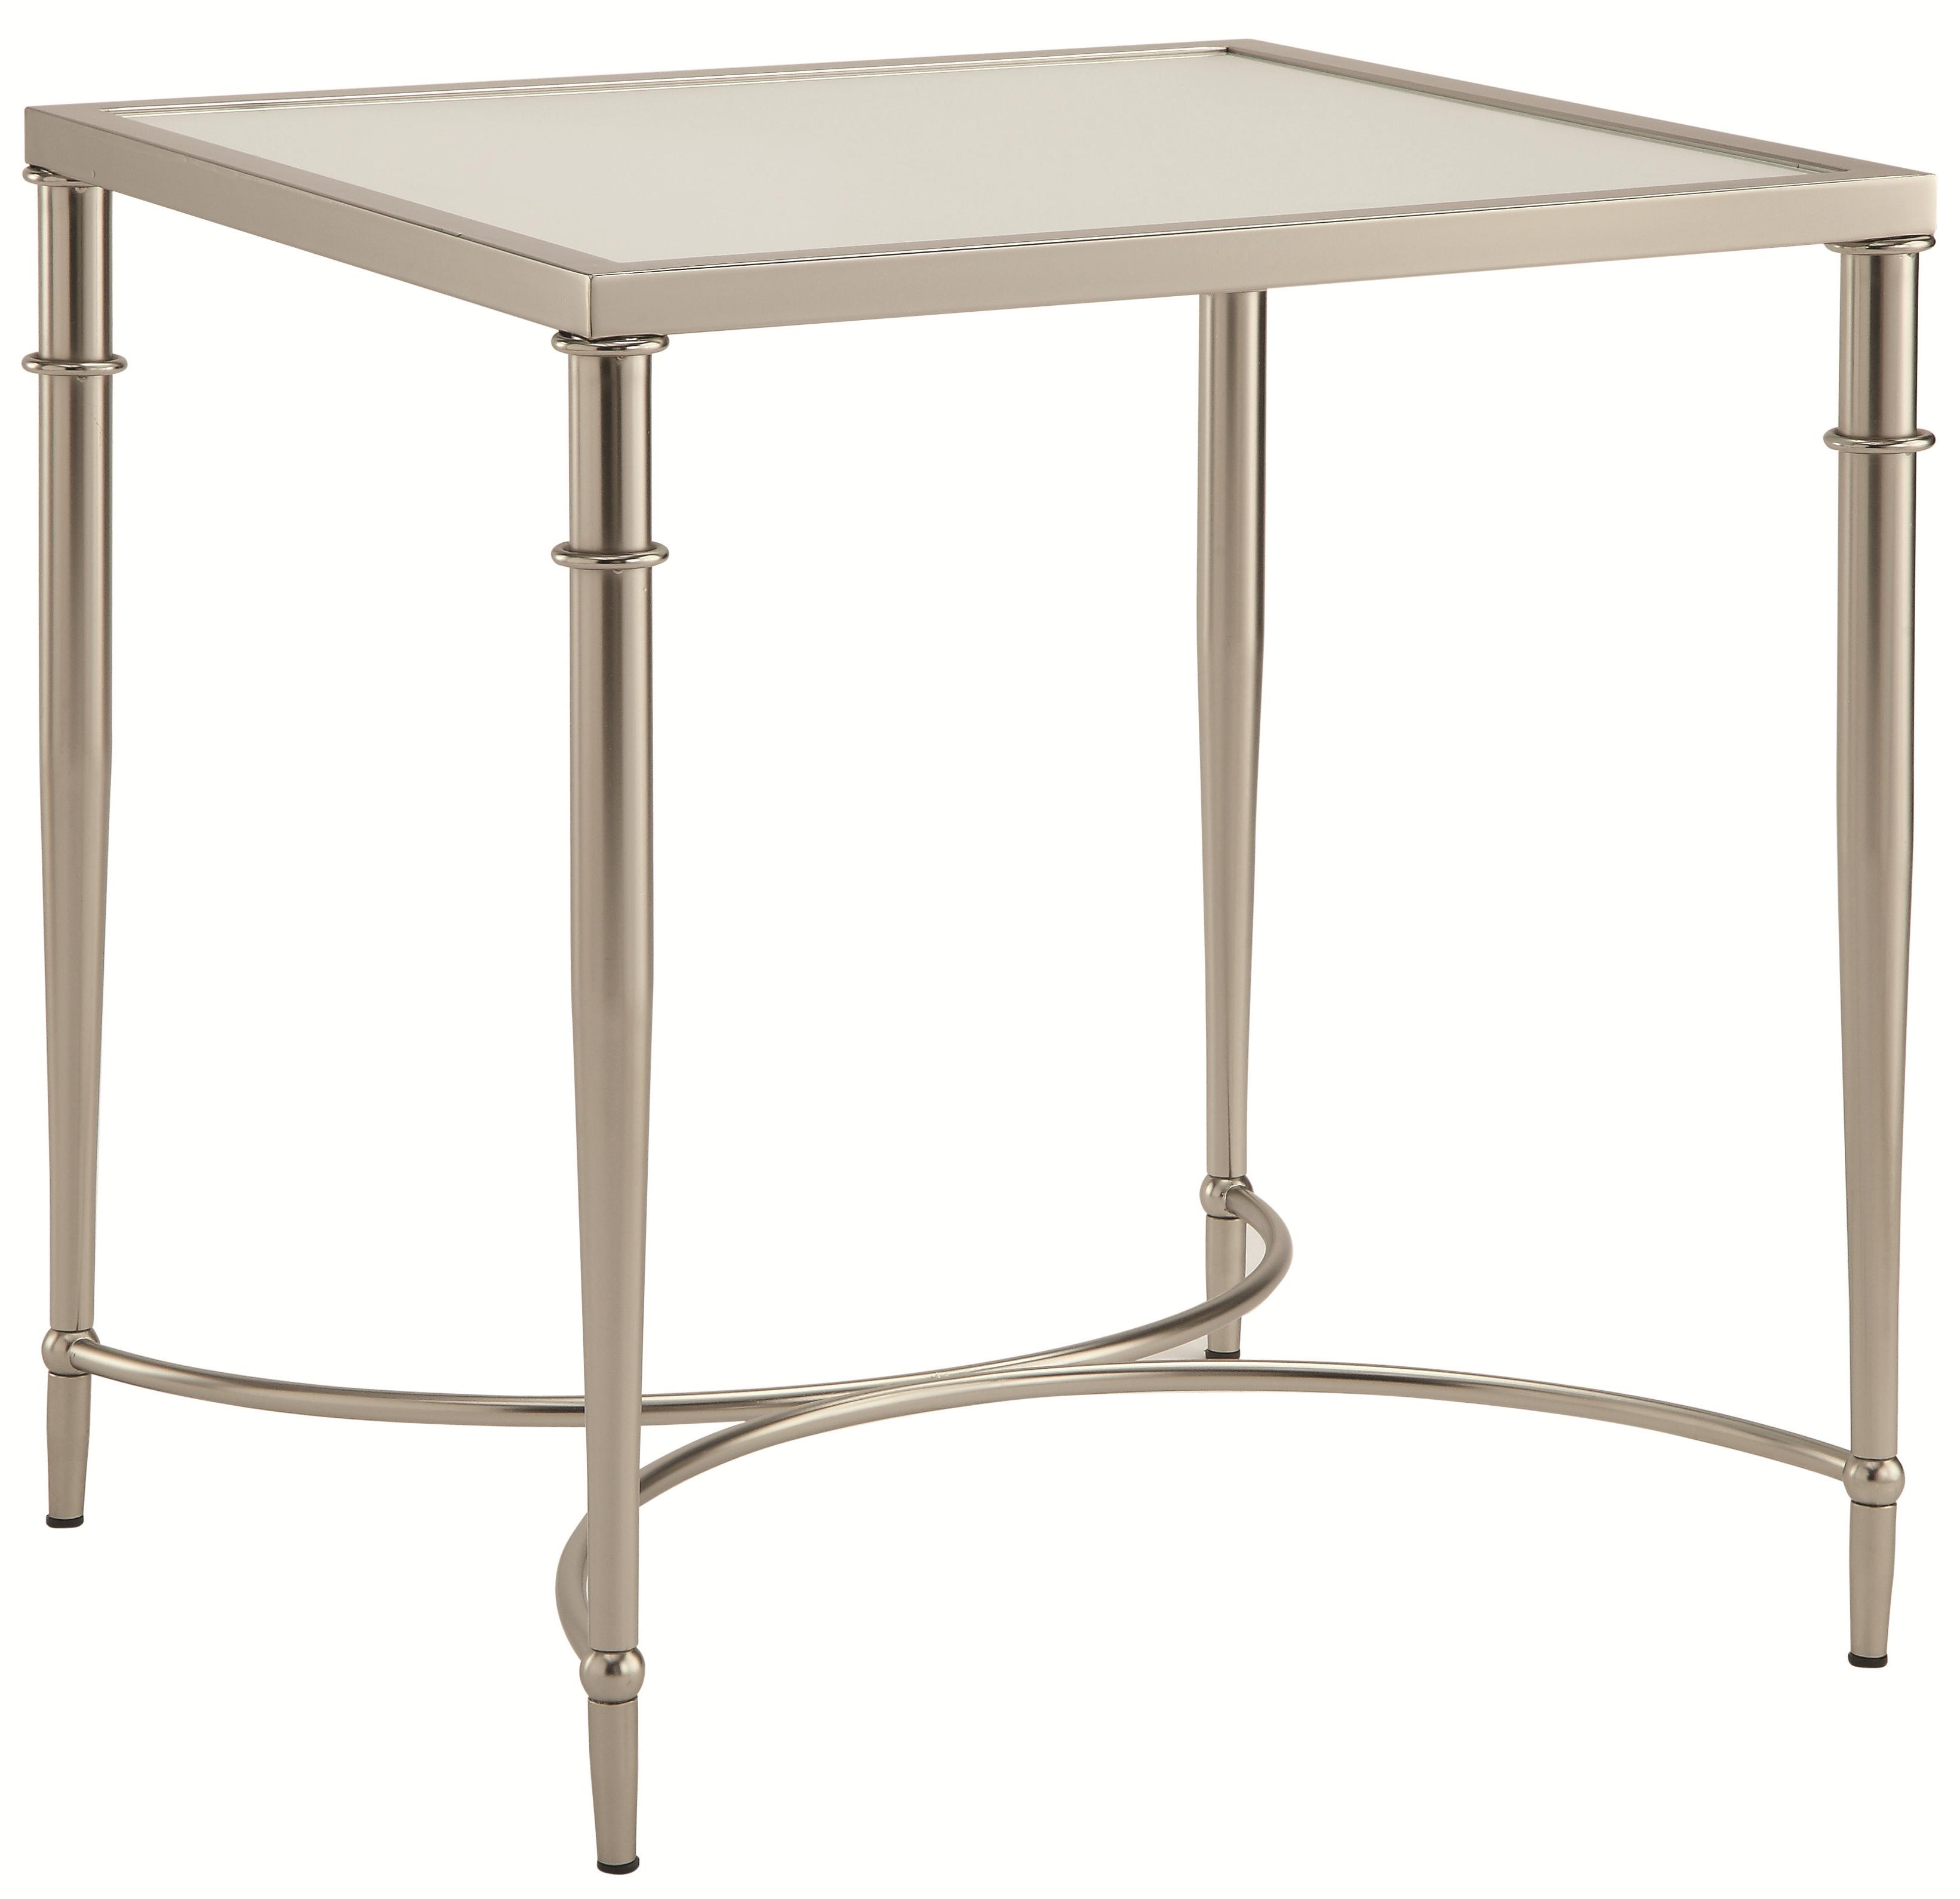 End Tables With Metal Legs 70334 End Table With Metal Legs And Frosted Glass Top